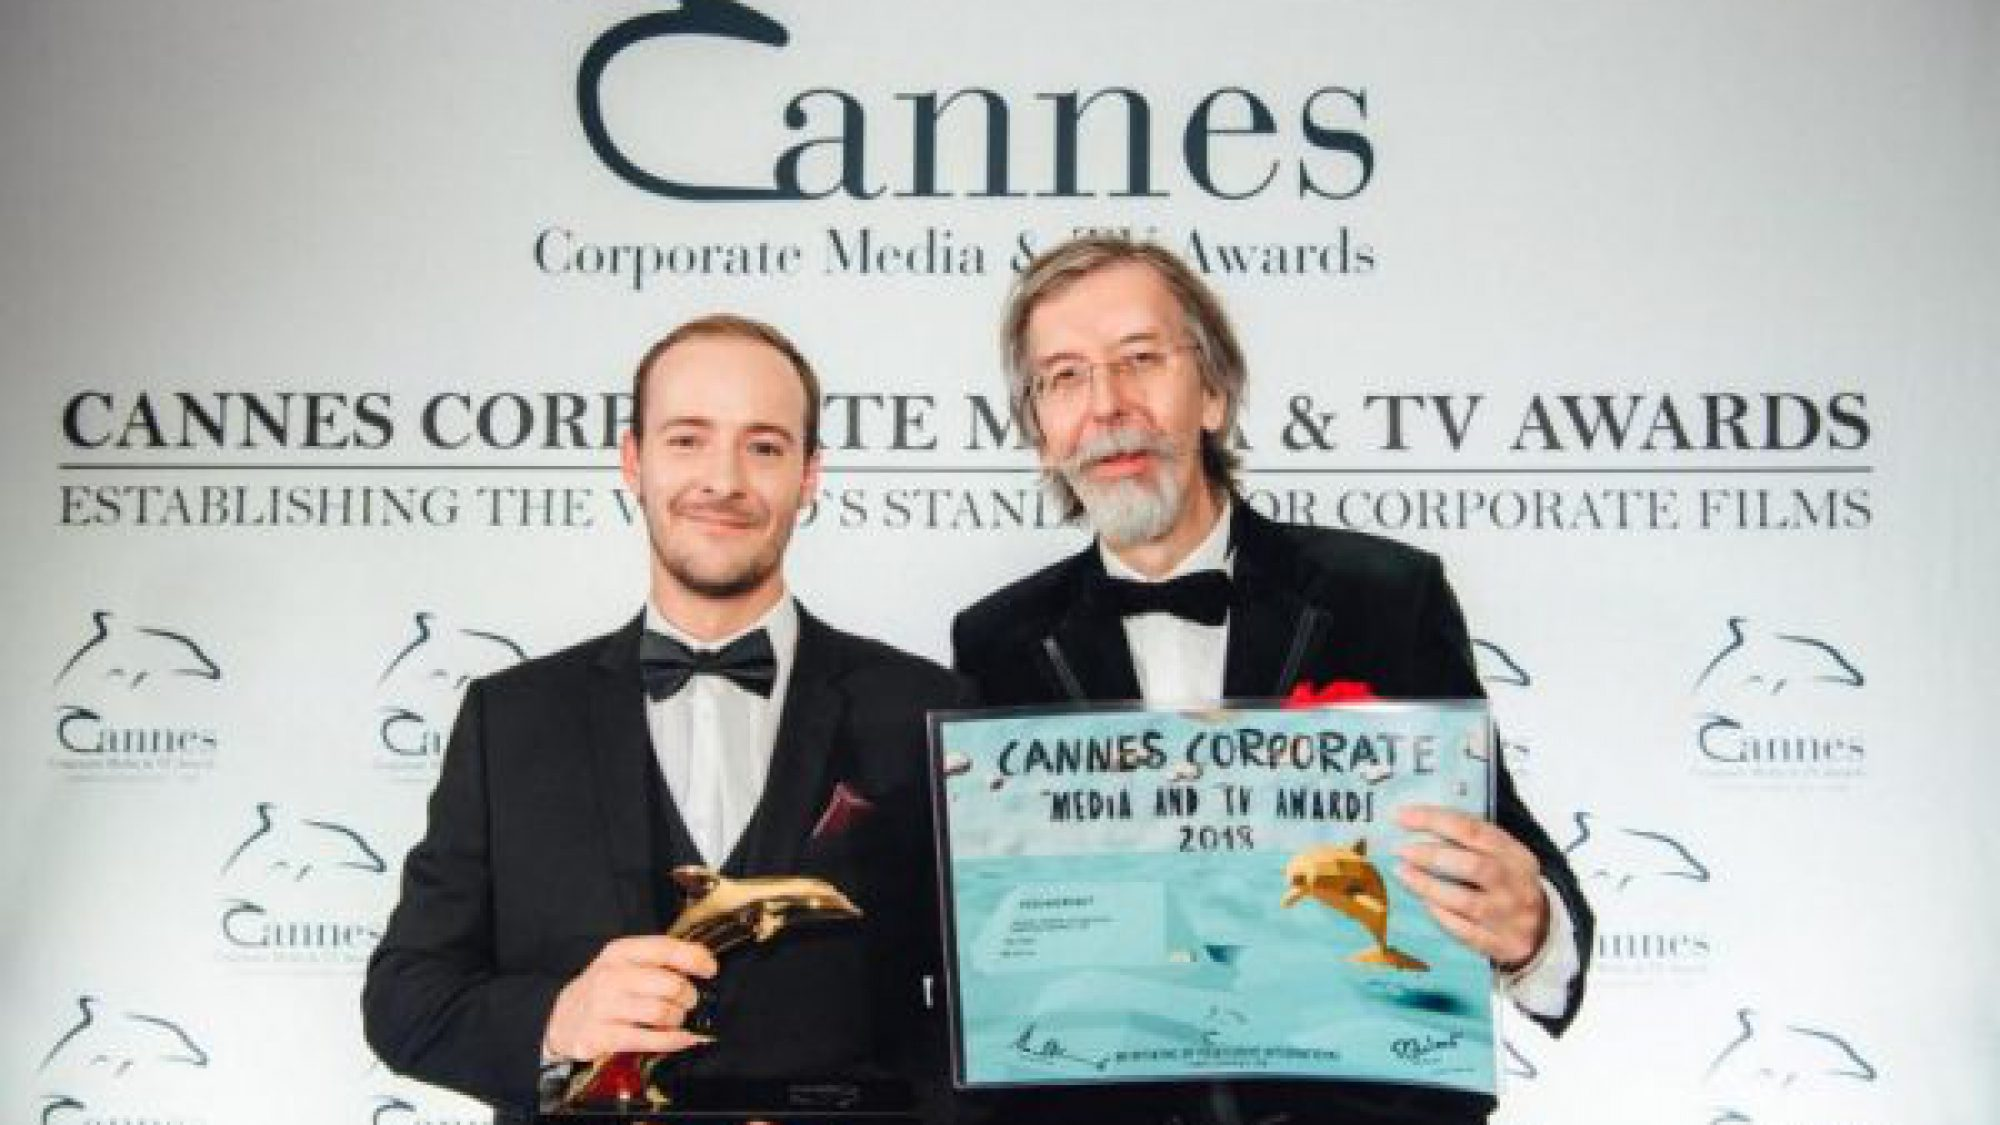 Raw London Cannes Corporate Media & TV Awards #EscapeRobot Gold Dolphin